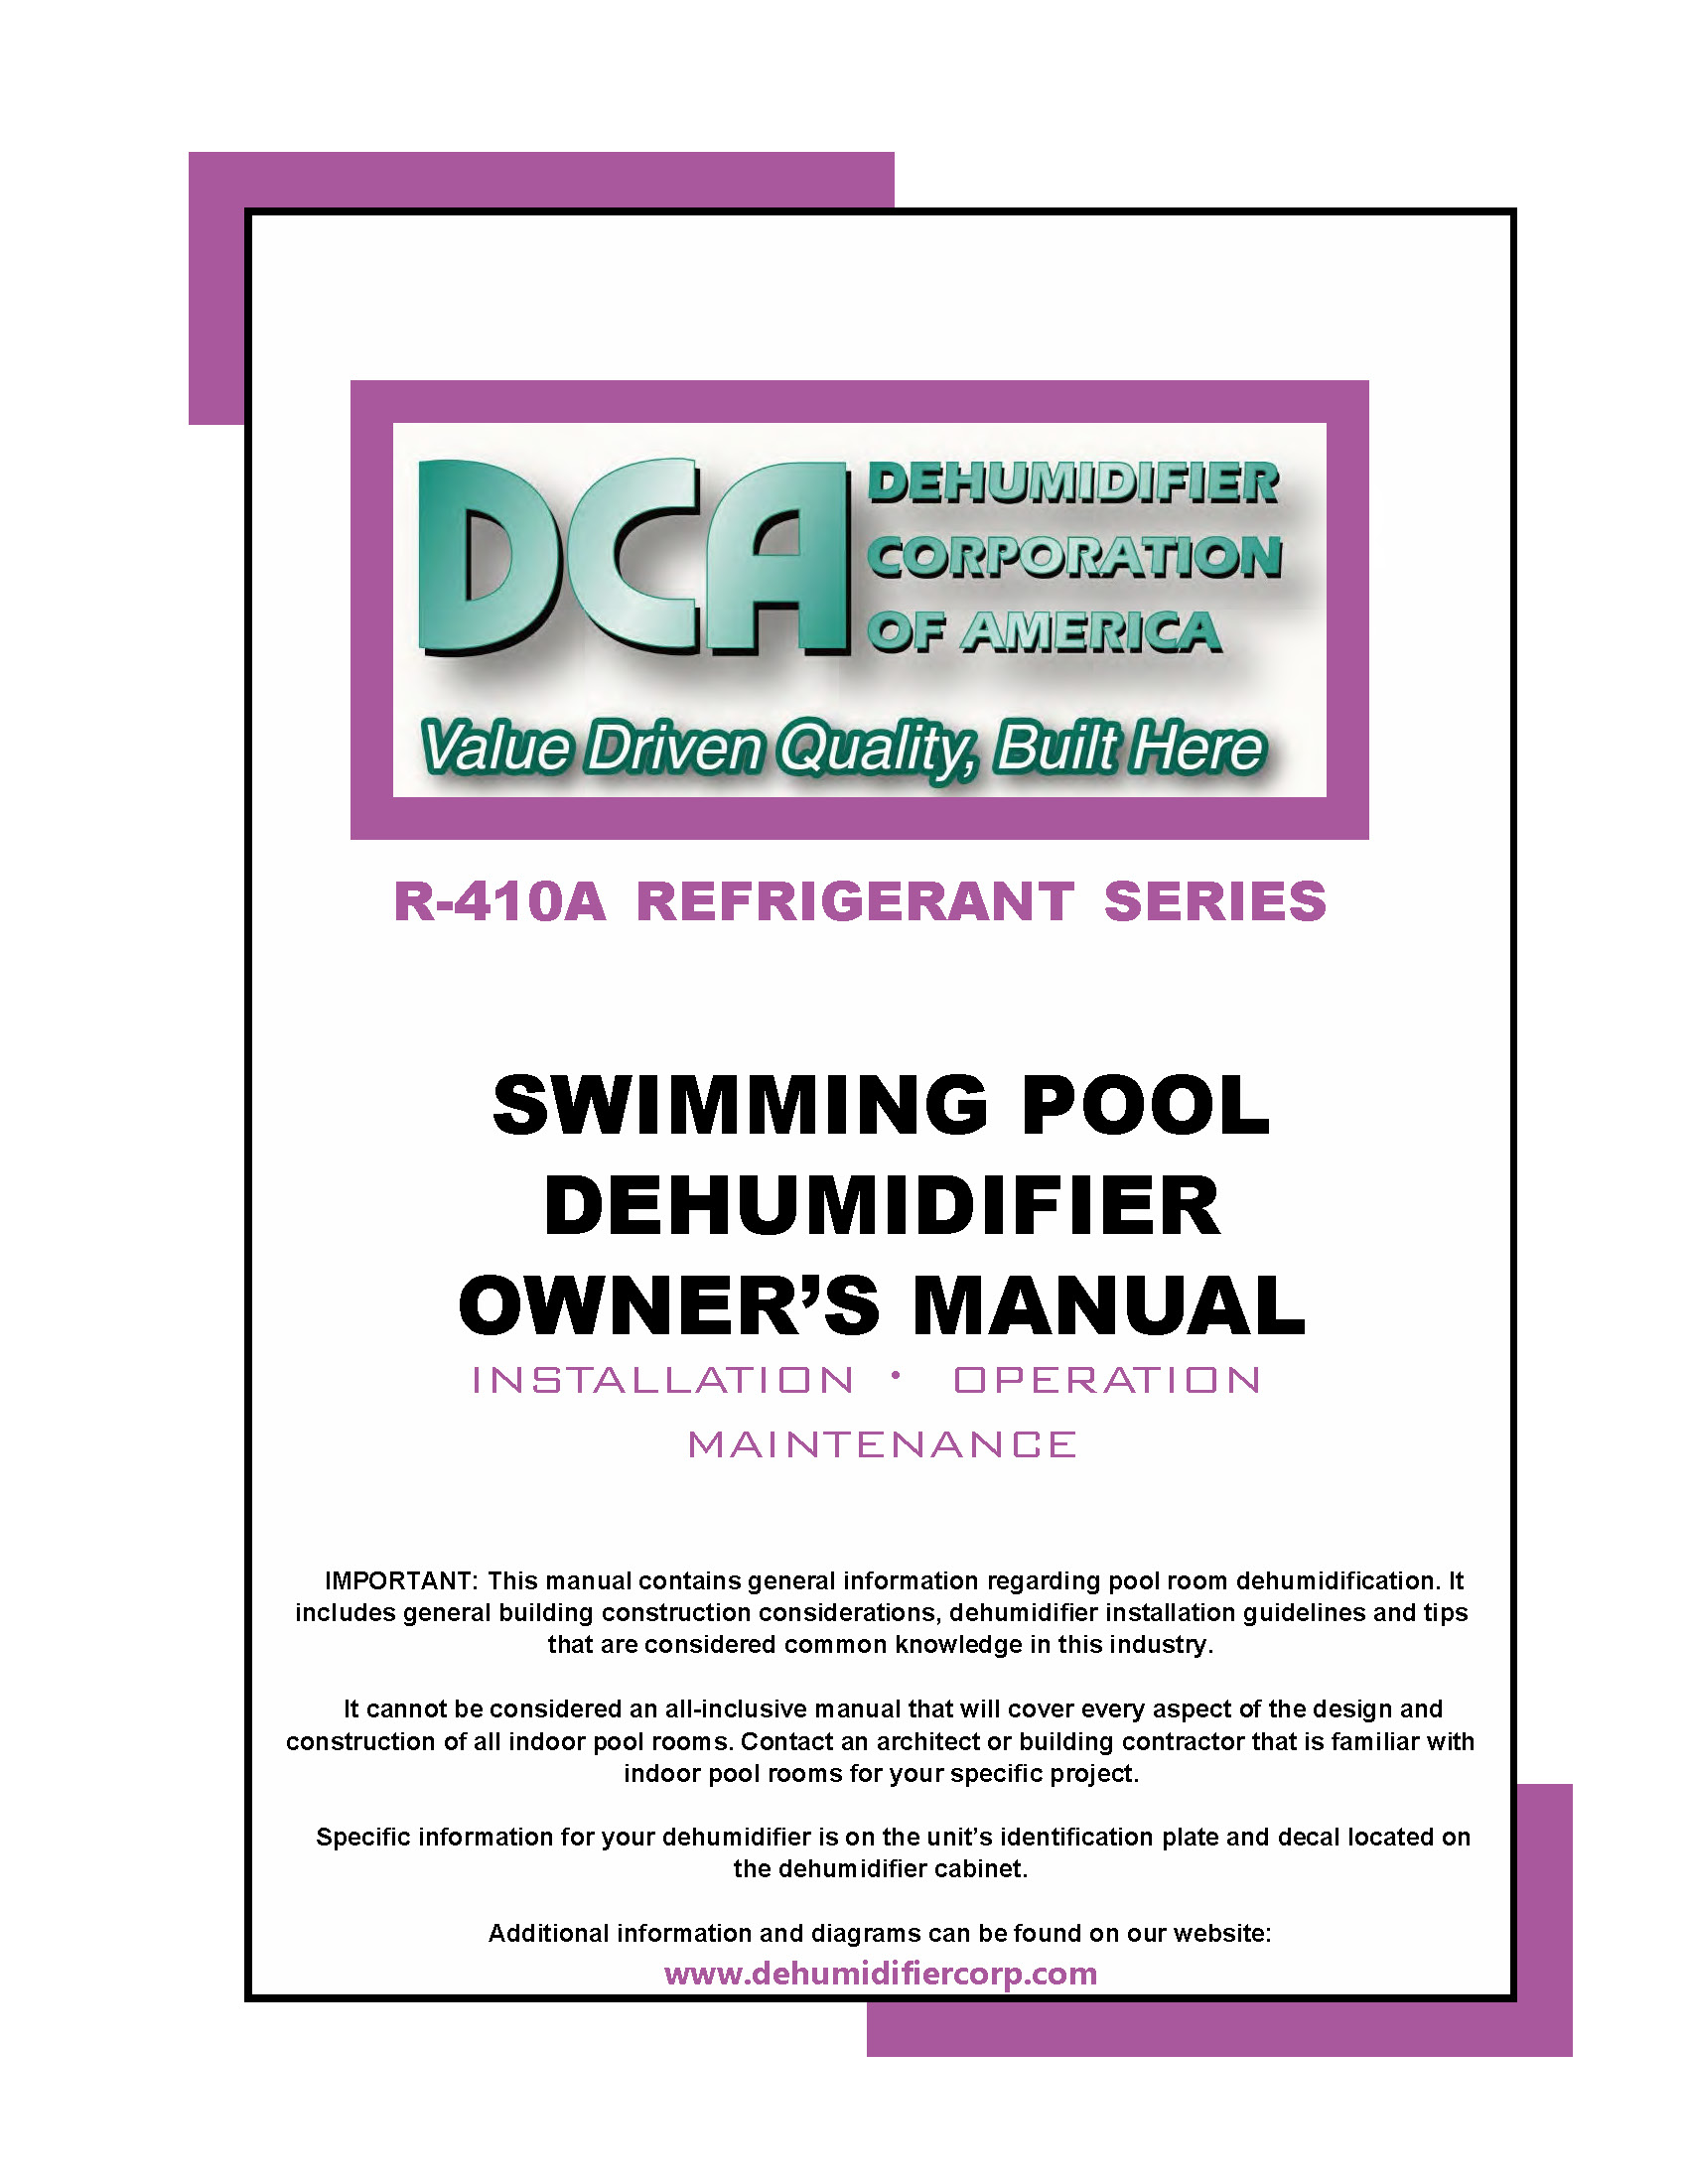 Swimming Pool Dehumidifier Owners Manual 410A